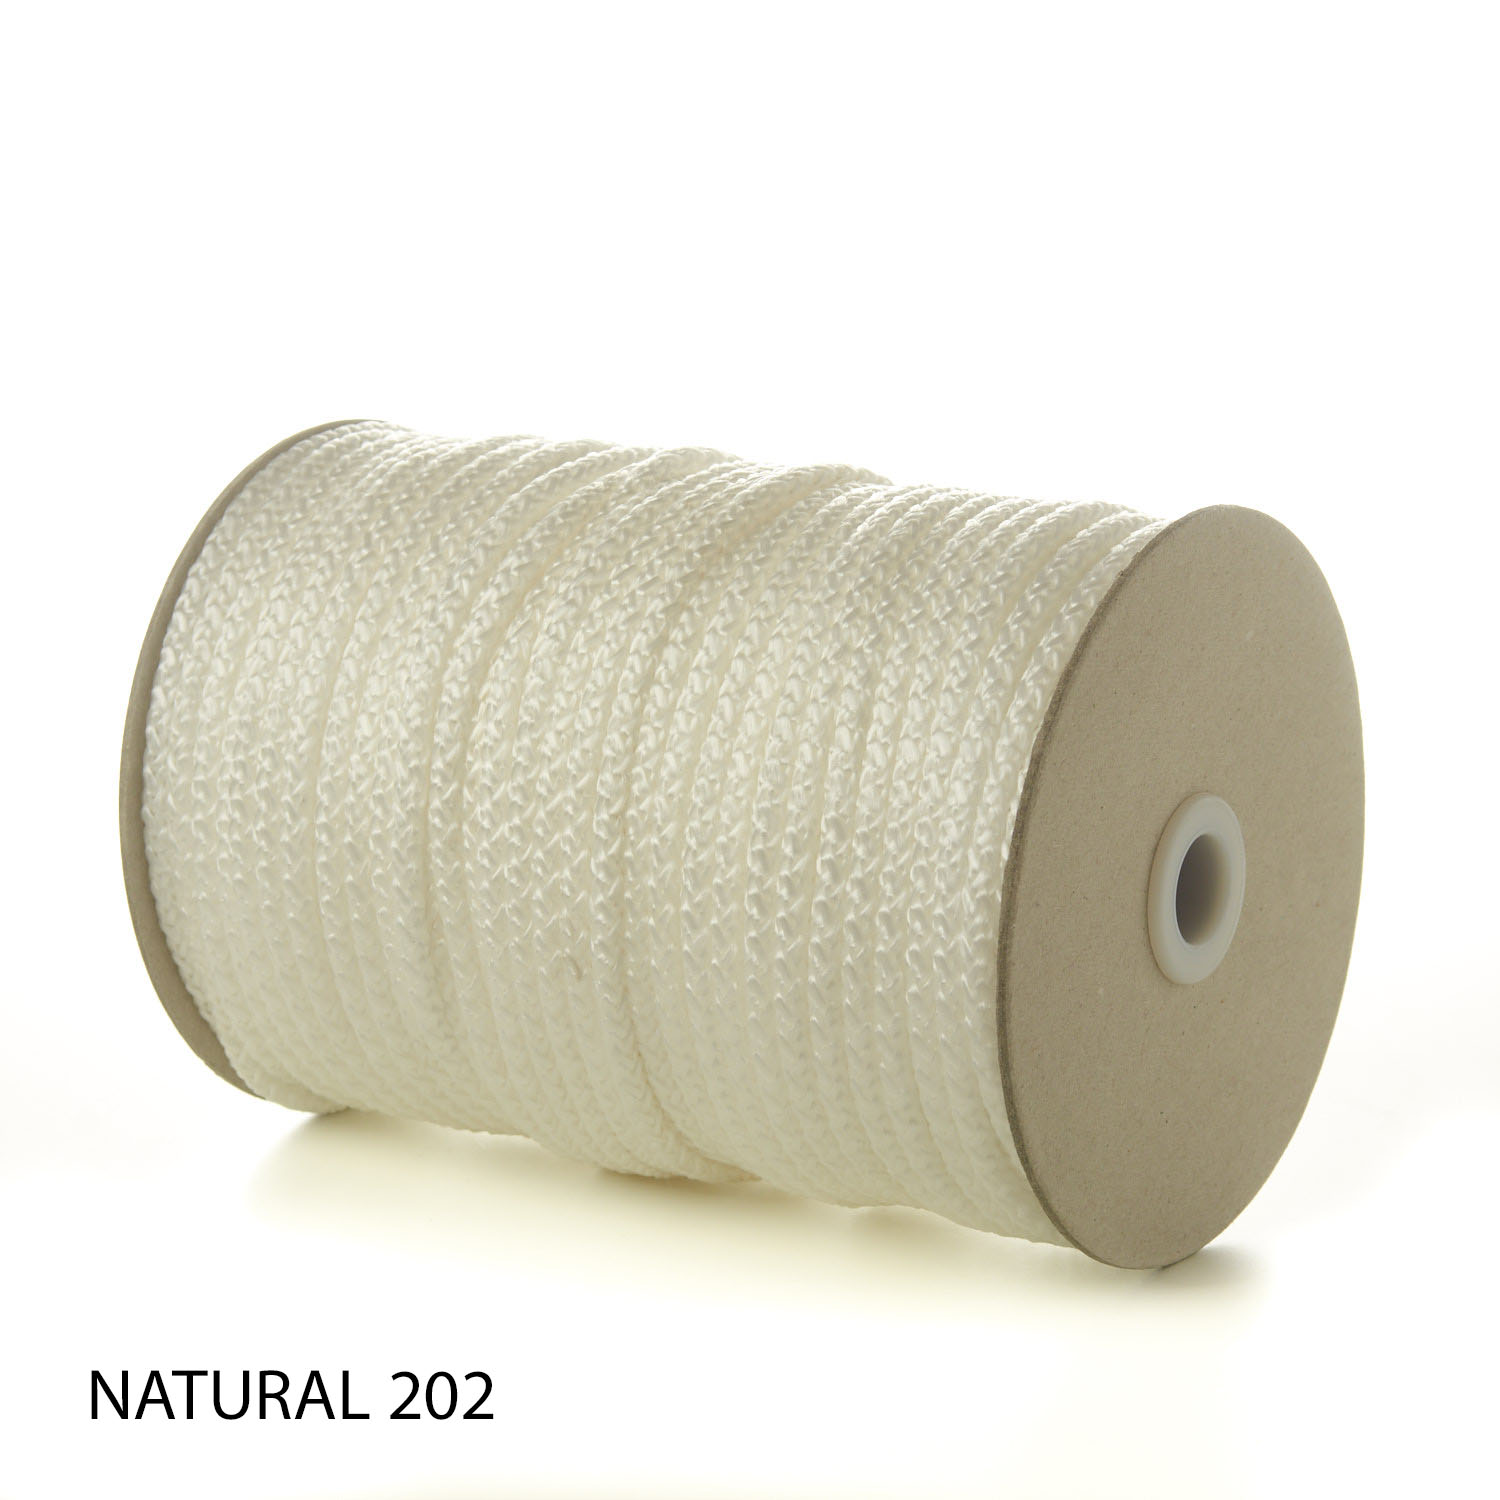 Natural White Polypropylene Knitted Cords Round String Rope Strong